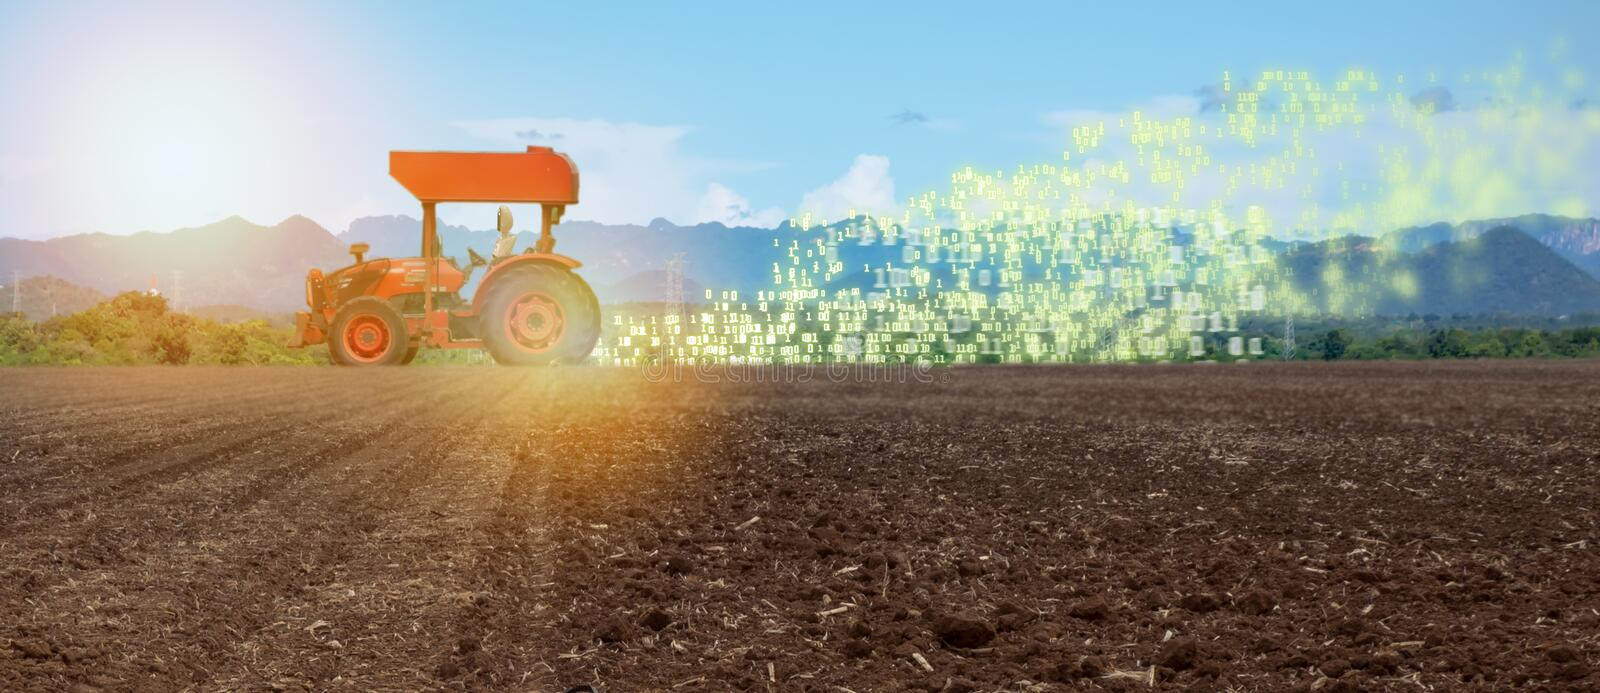 Iot smart farming, agriculture in industry 4.0 technology with artificial intelligence and machine learning concept. it help to im royalty free stock images